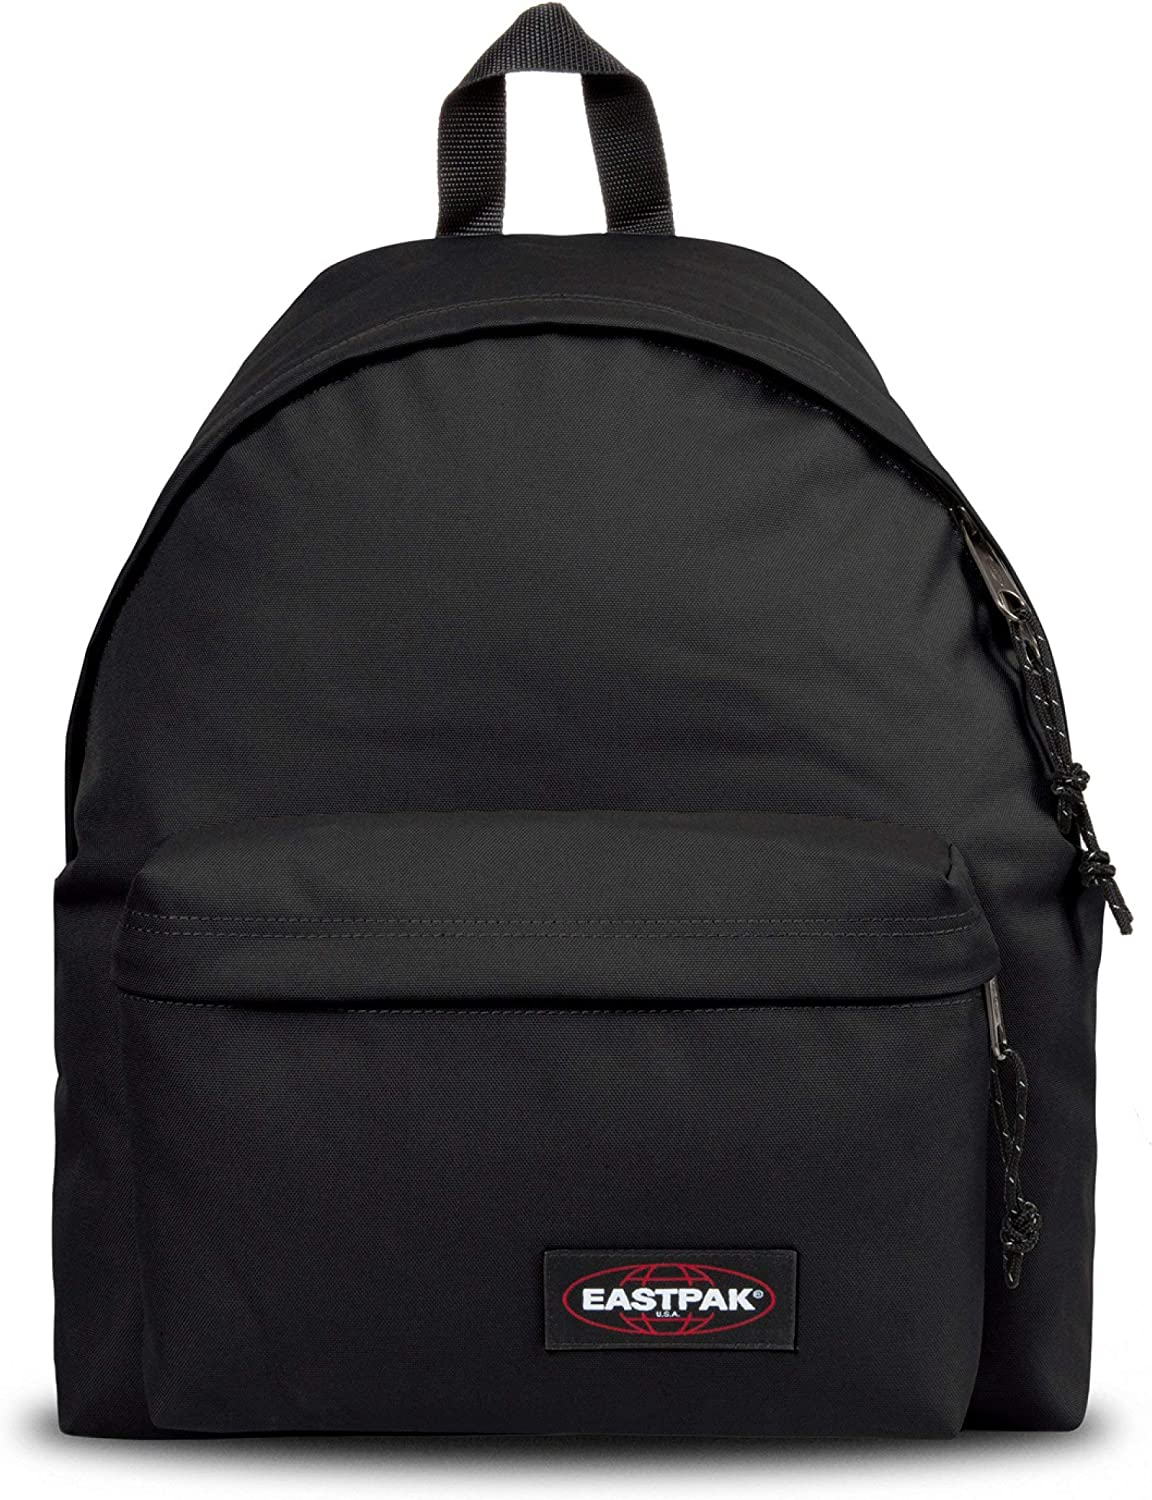 Eastpak Padded Pak'R, Zaino Casual Unisex – Adulto, Nero (Black), 24 liters,...